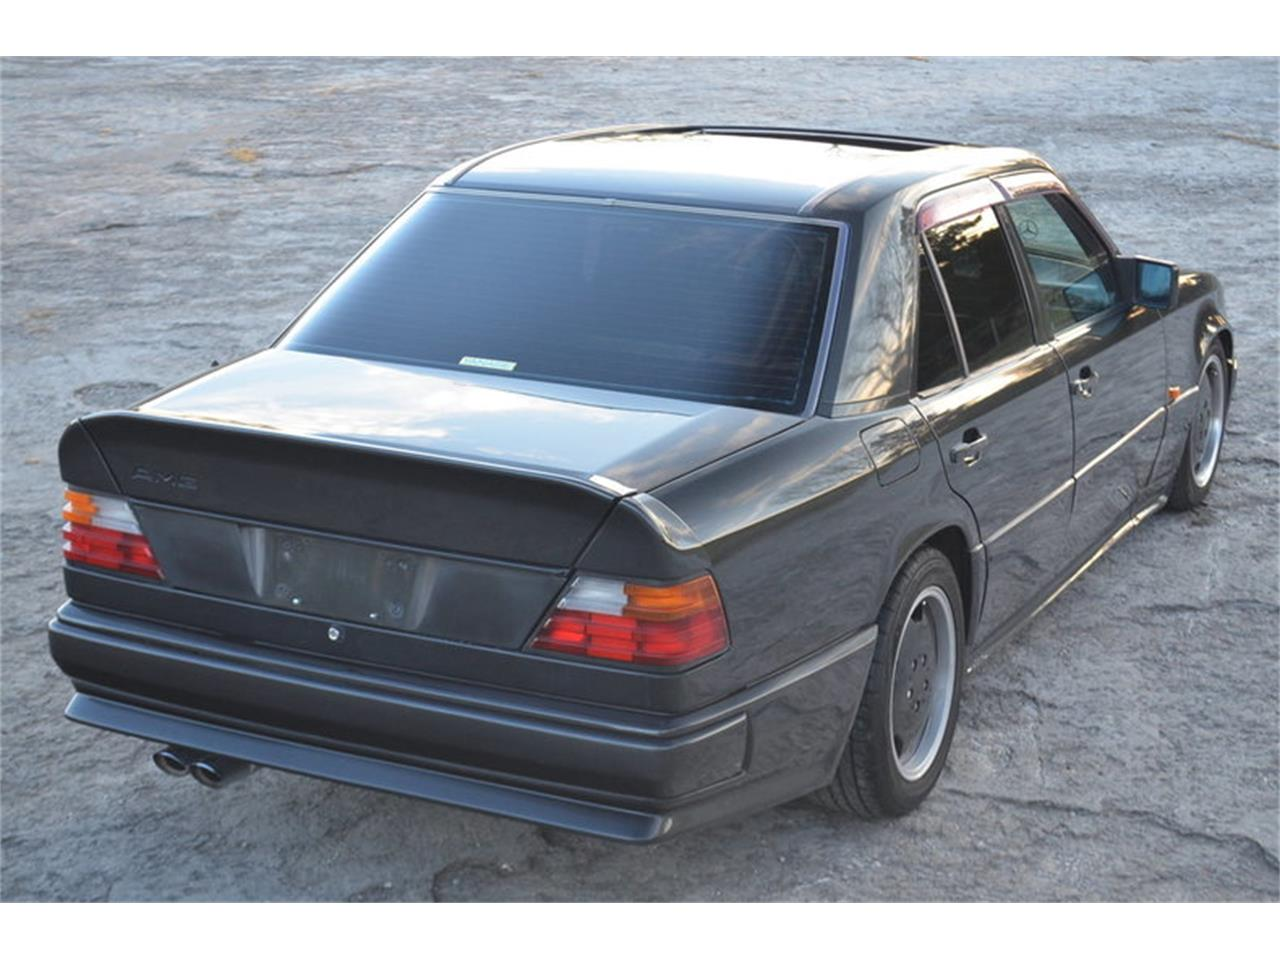 Large Picture of 1990 Mercedes-Benz 300E located in Lebanon Tennessee - $19,850.00 Offered by Frazier Motor Car Company - MEK4